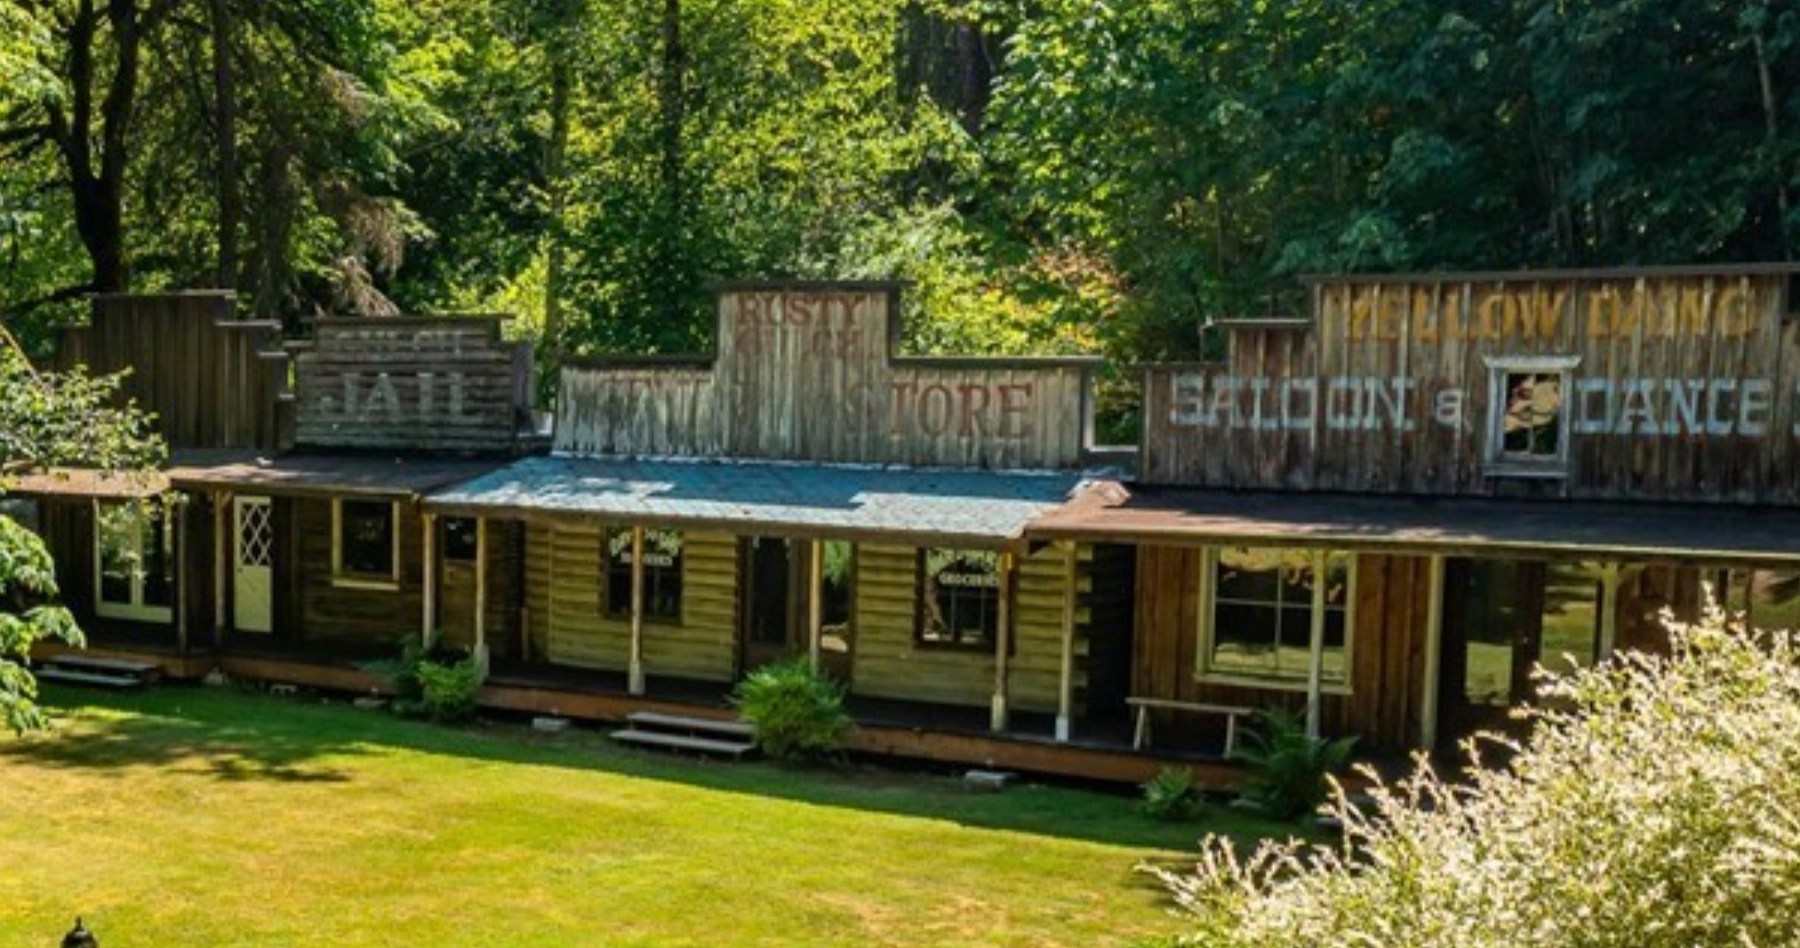 For sale: Conventional large home with an 1800s western ghost town in the backyard